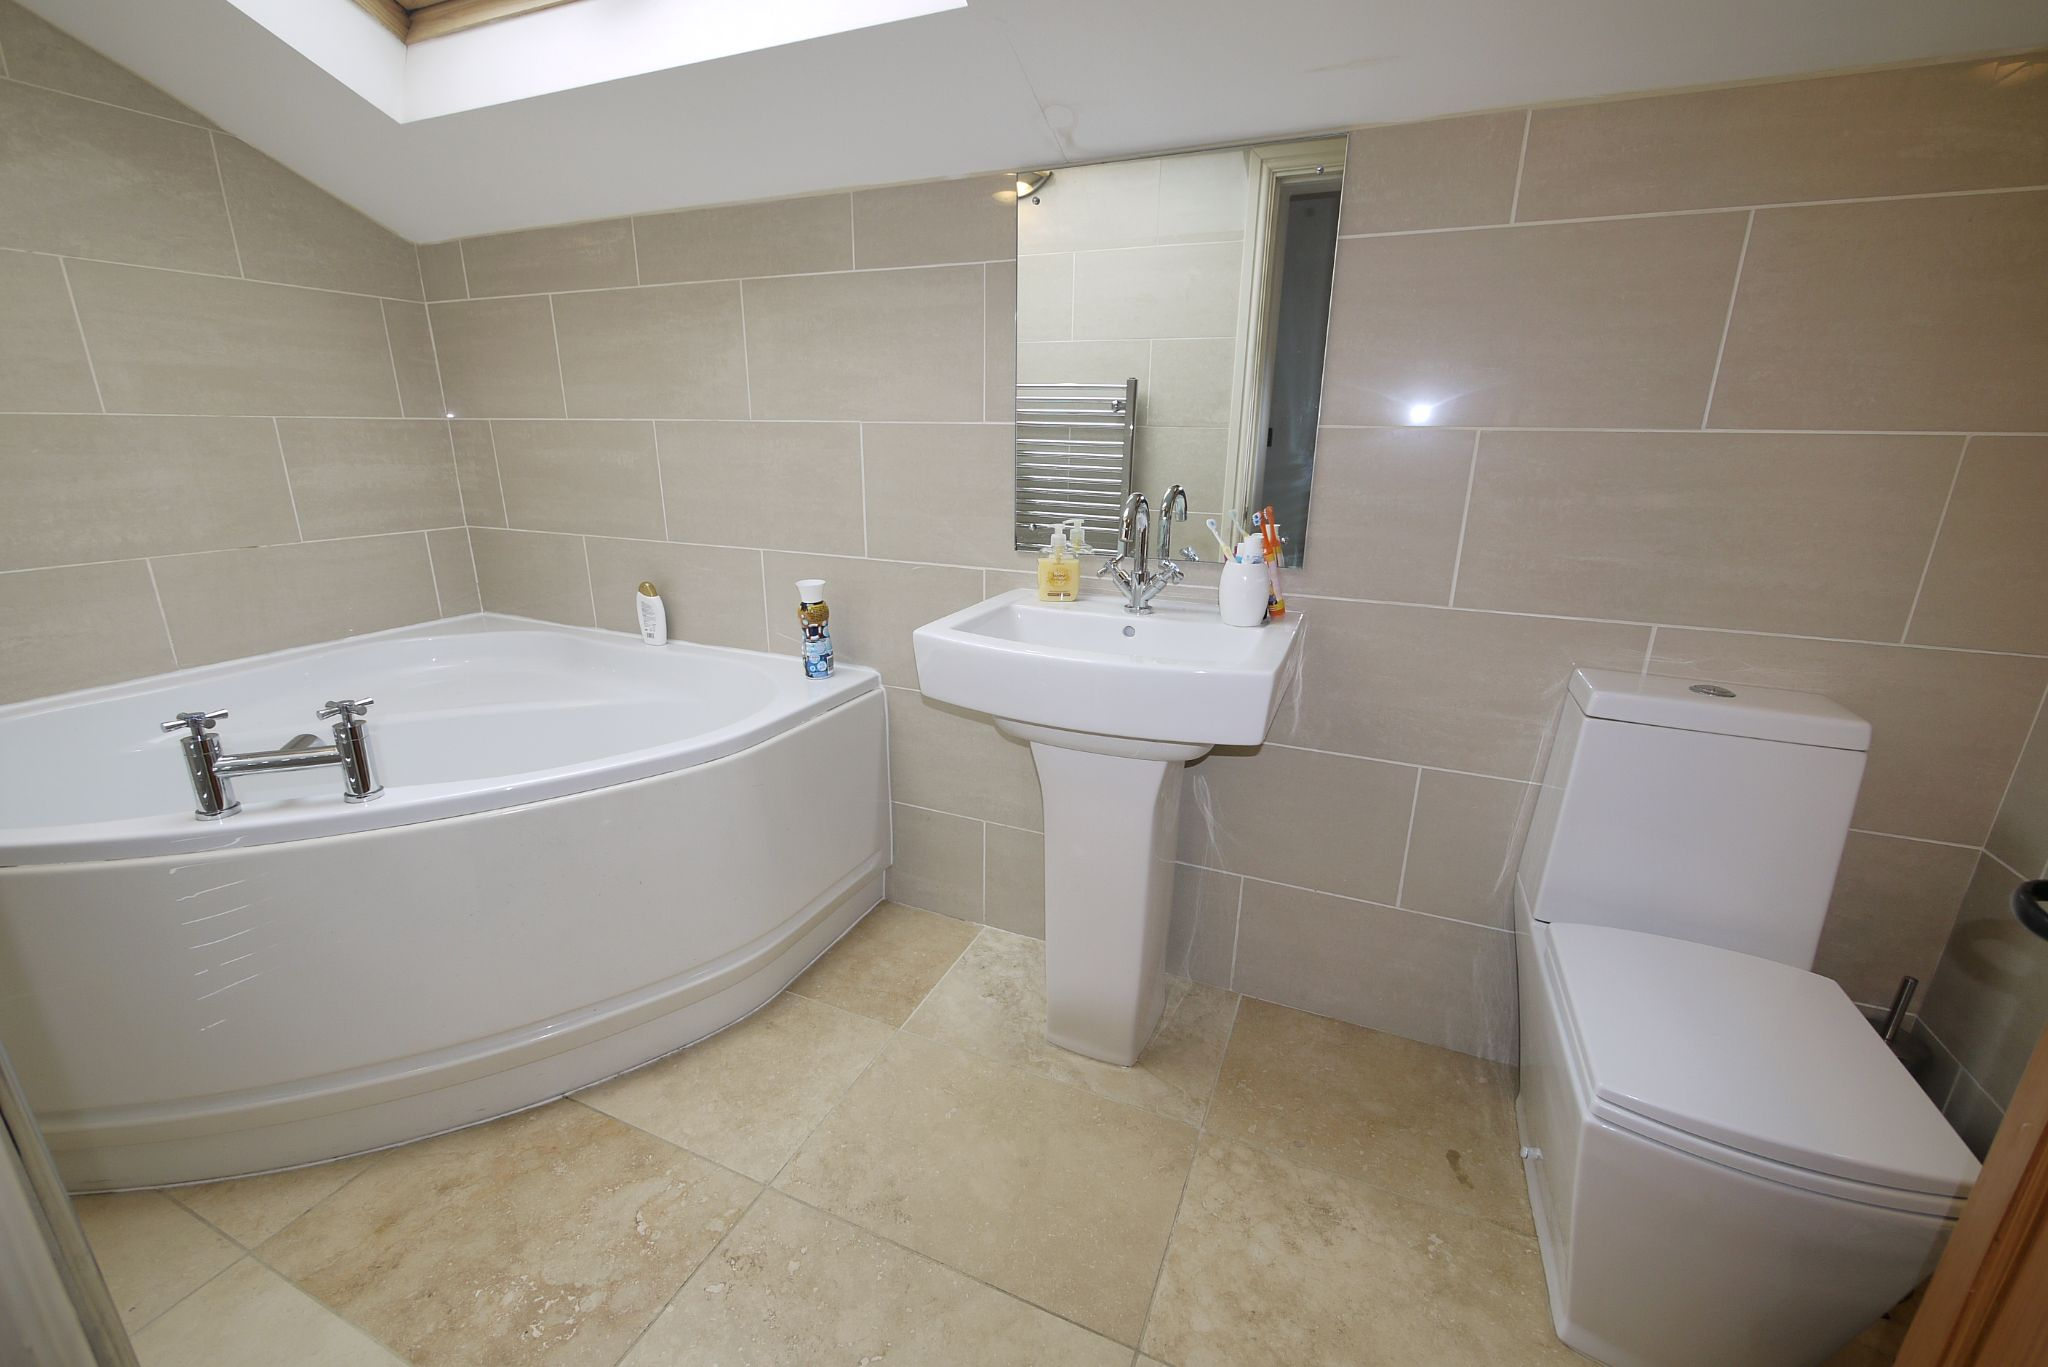 4 bedroom detached house For Sale in Brighouse - Photograph 12.